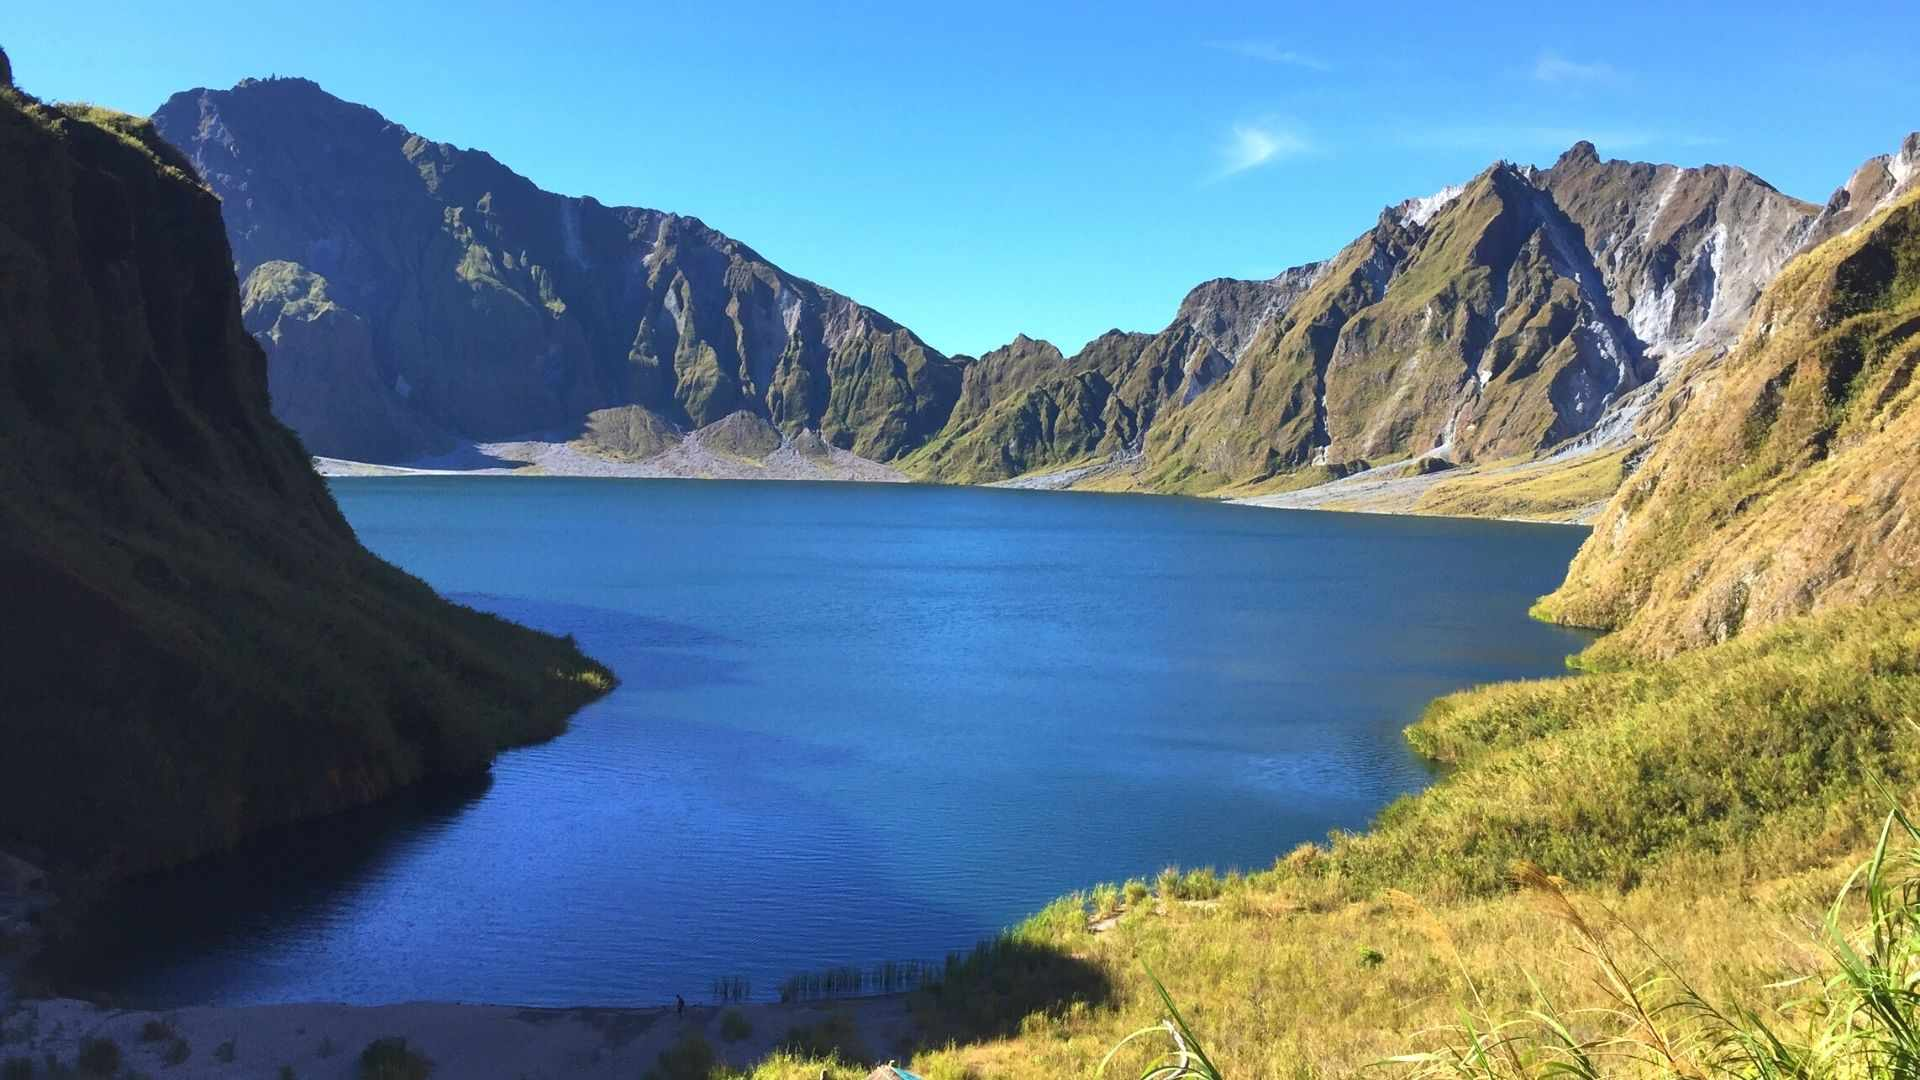 The crater lake of Mount Pinatubo